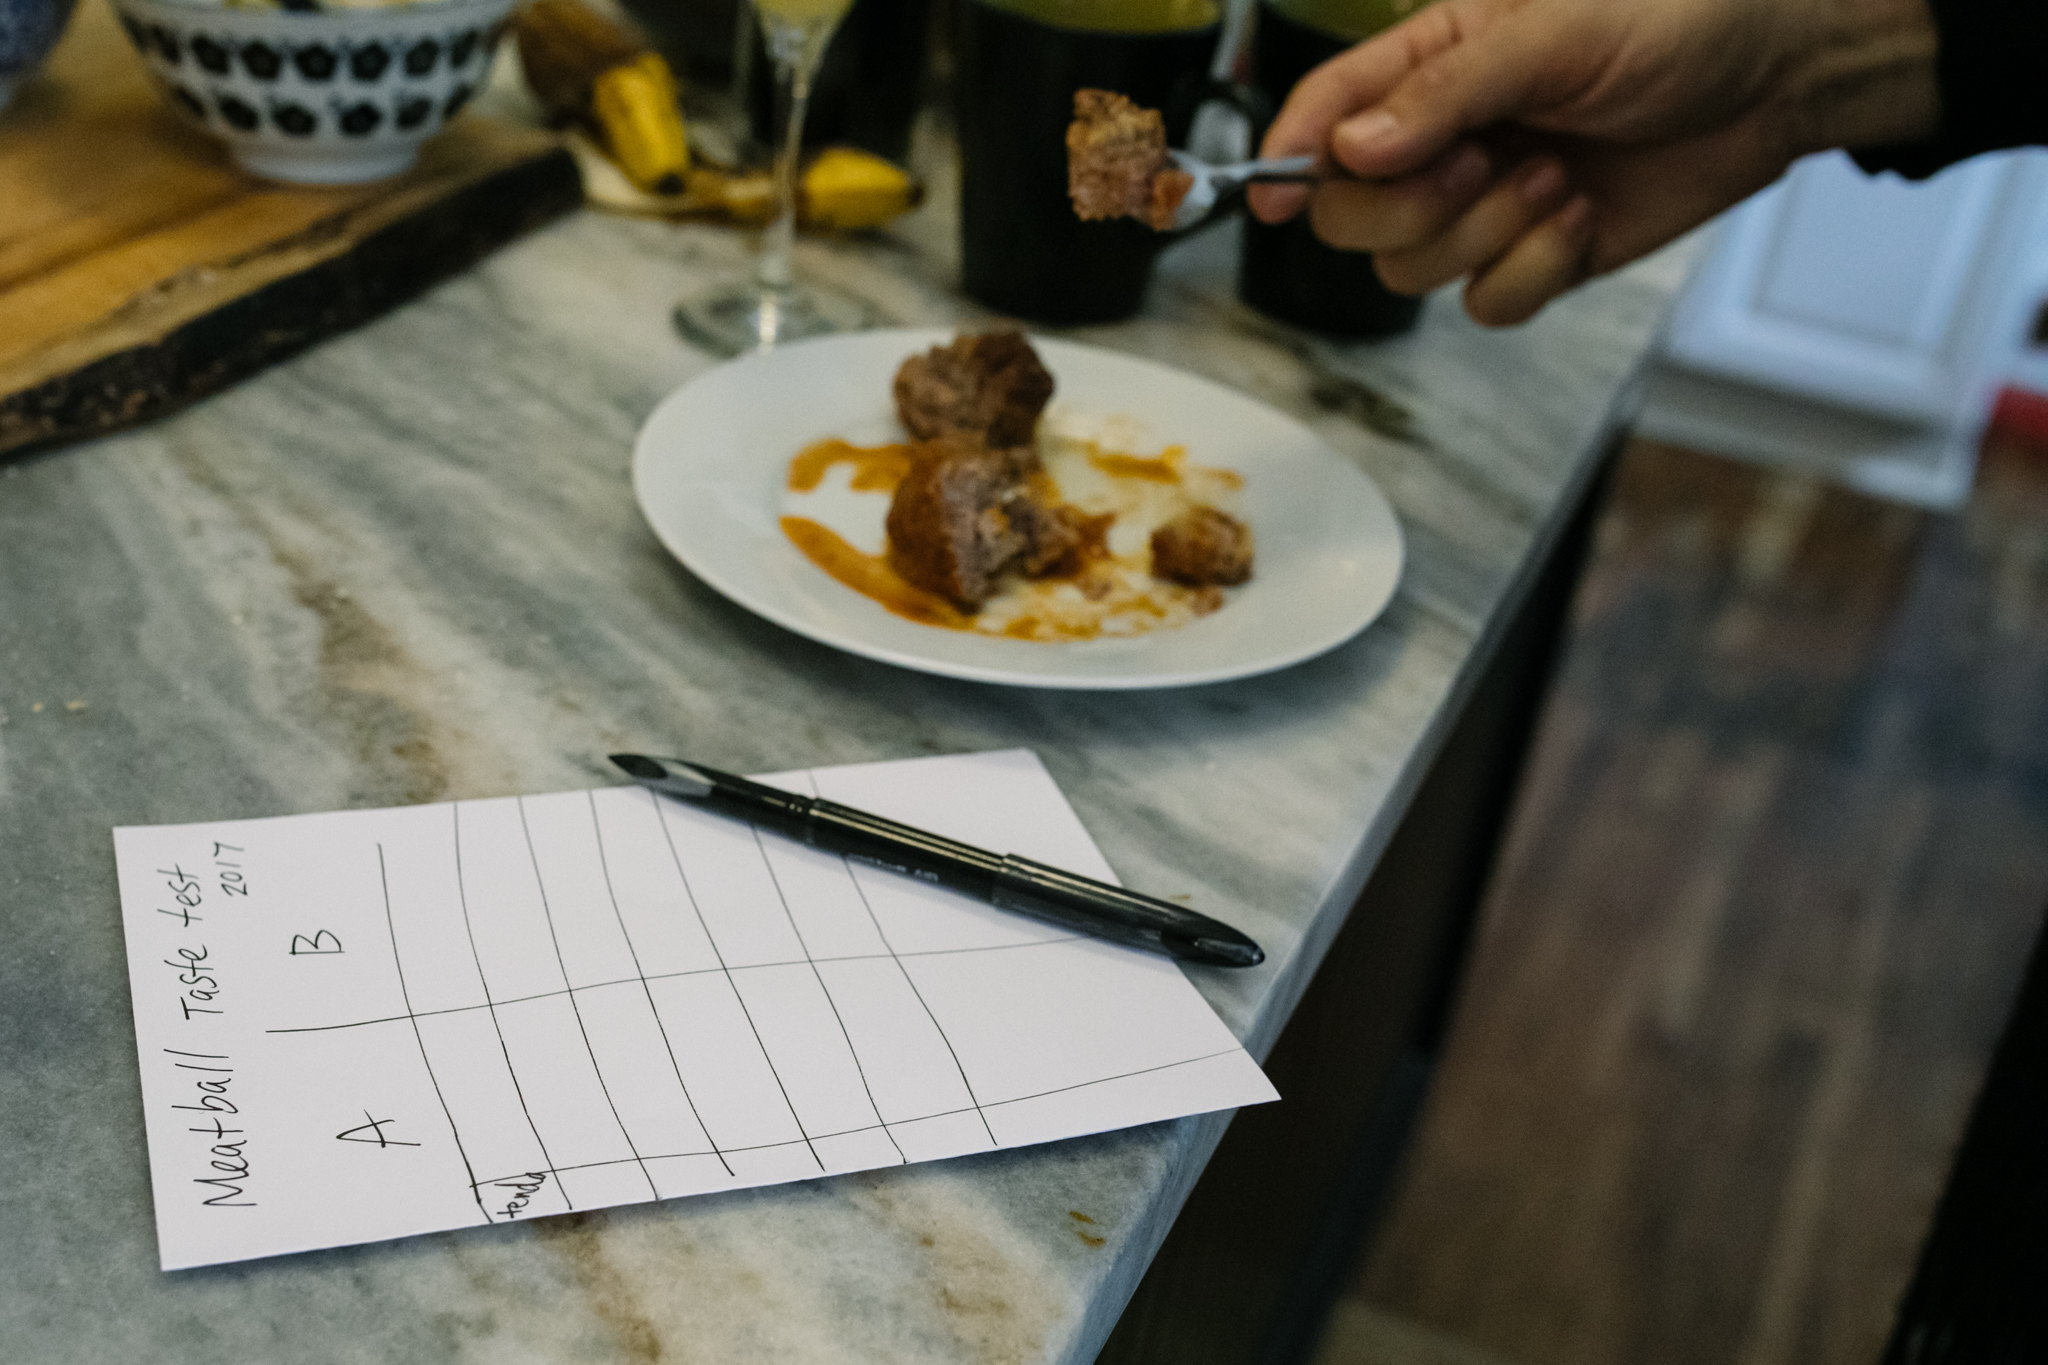 A score card sits next to a plate of meatballs on a kitchen counter